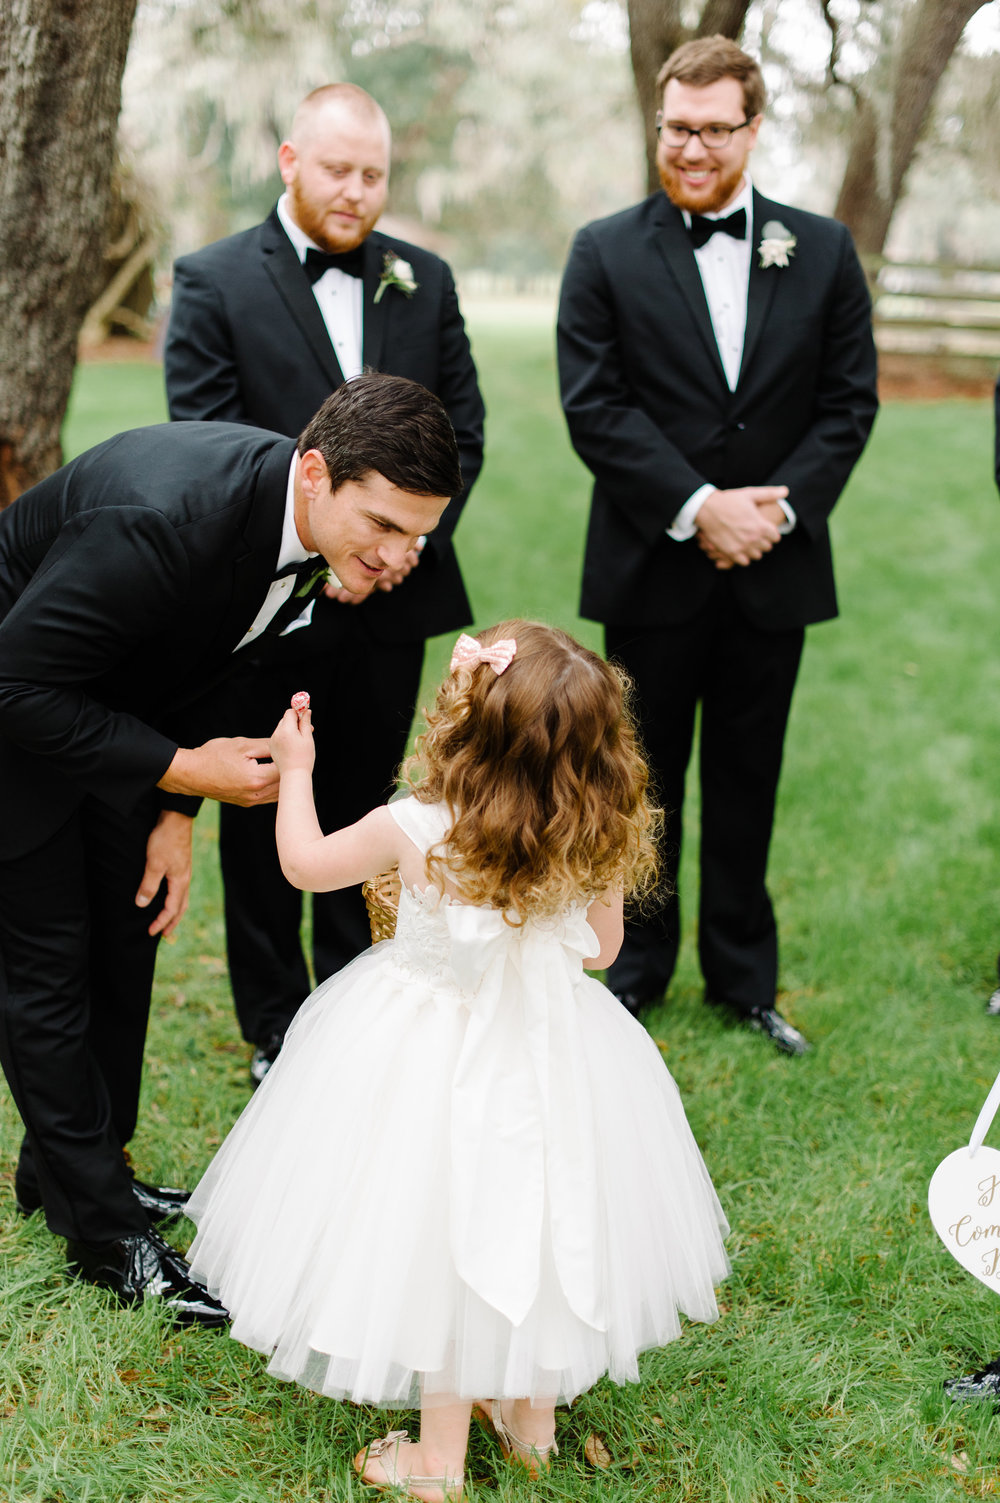 Last minute advice from the Flower Girl to the Groom